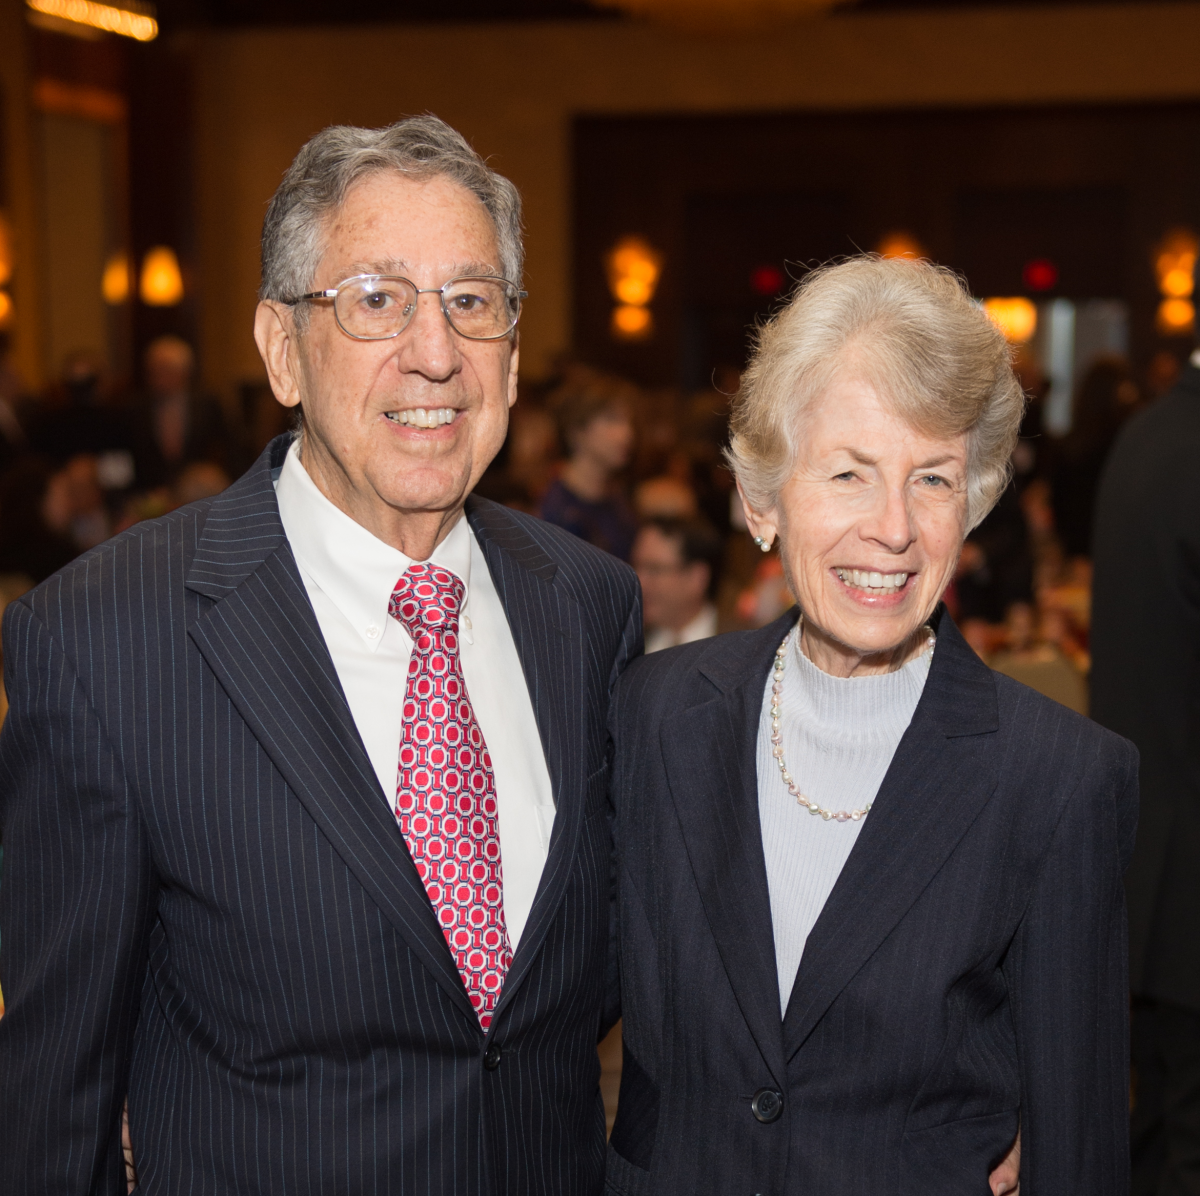 News, Shelby, Holocaust  useum luncheon, Nov. 2015,  GF_228 Richard Lowenstern, Cynthia Lowenstern